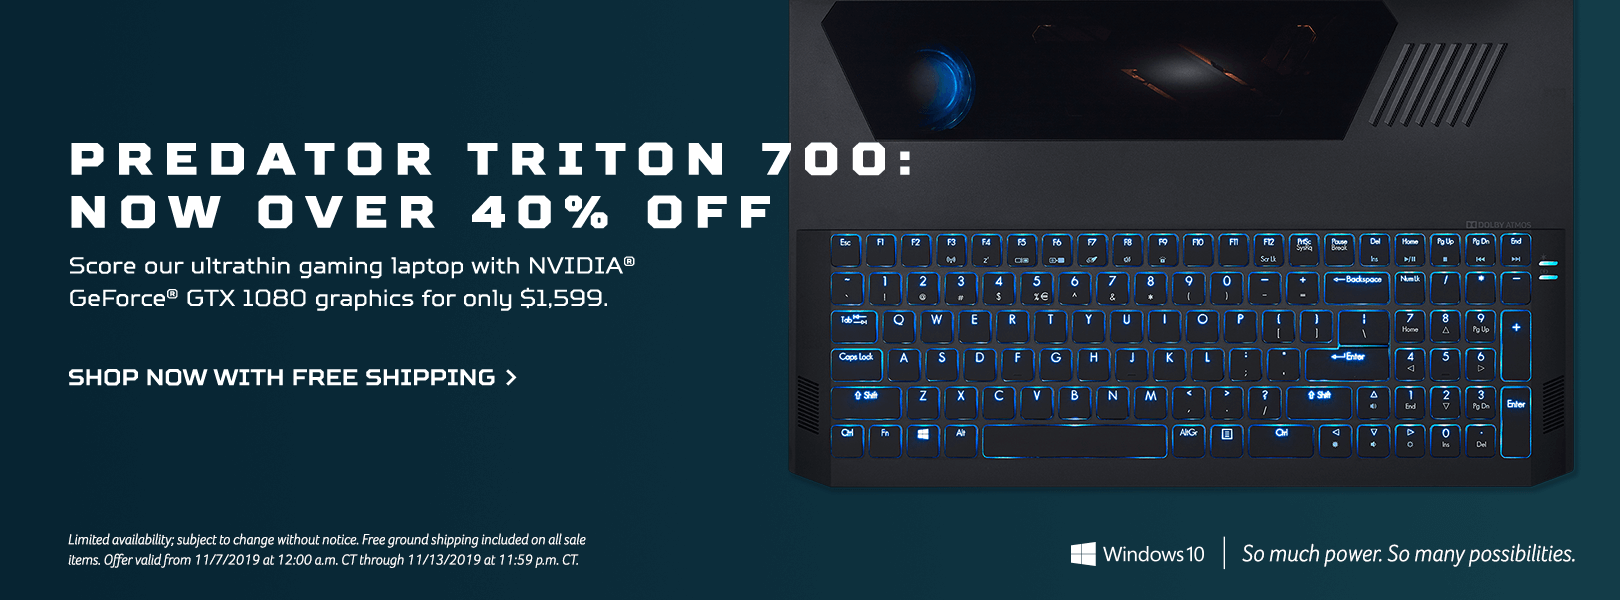 Save over 40% and get the Predator Triton 700 Gaming Laptop for only $1,599